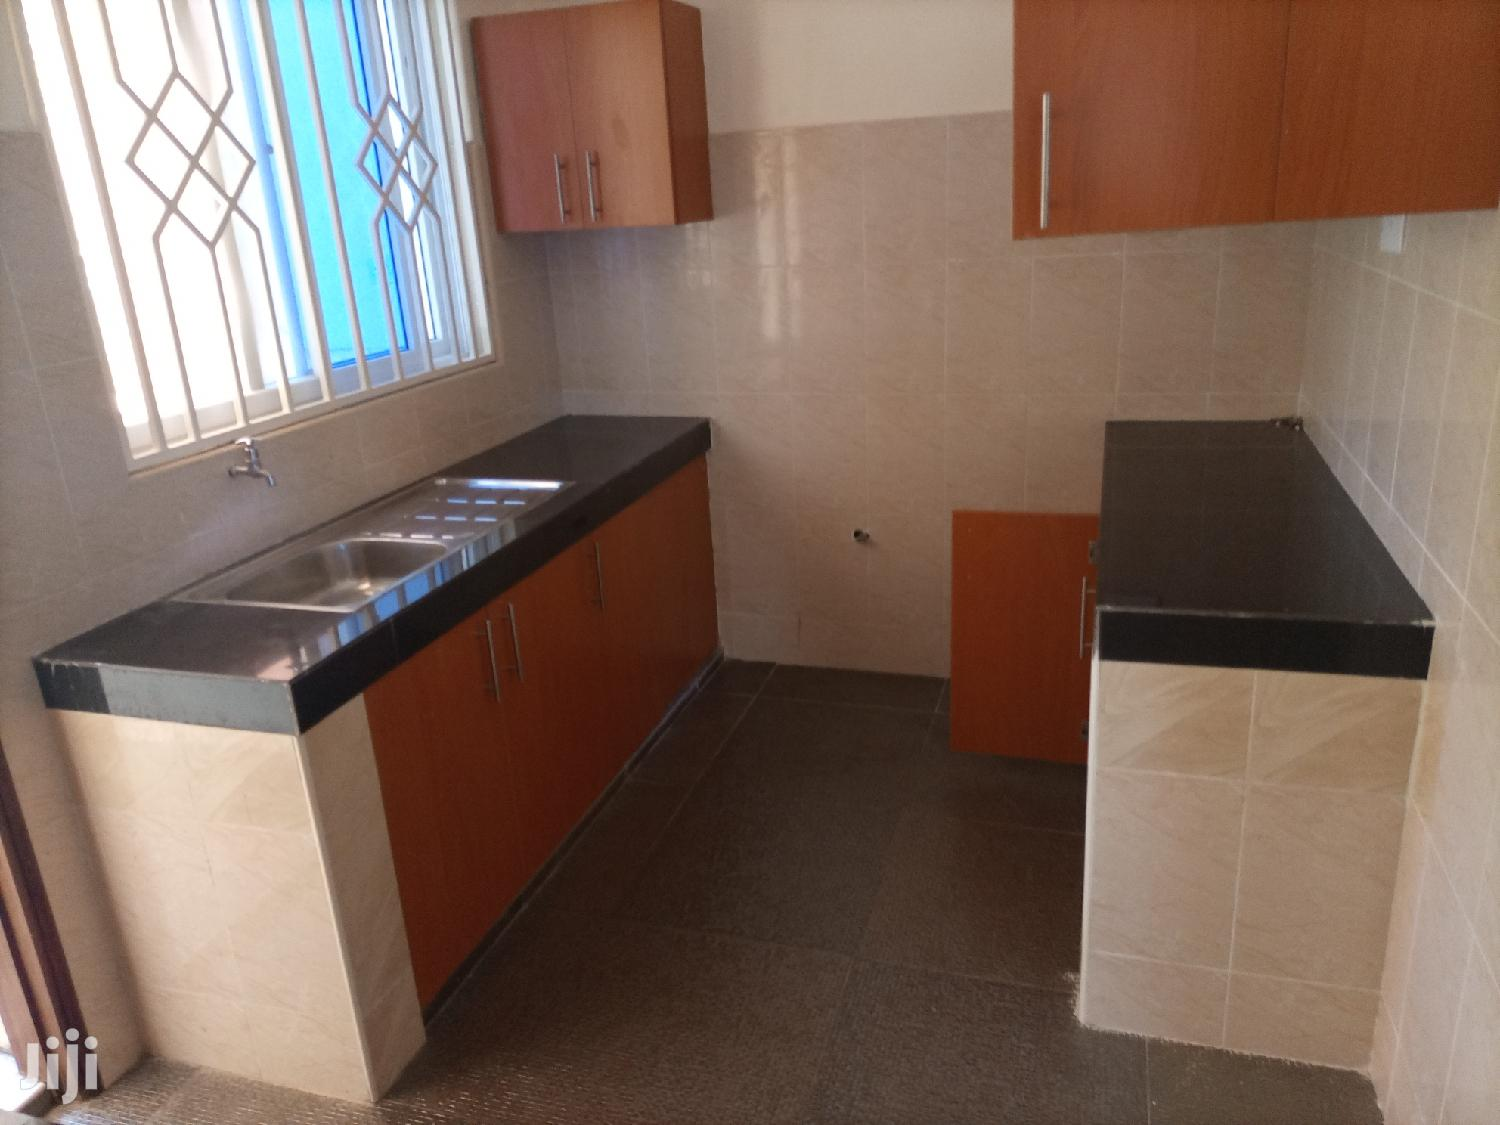 Beachrd to Let: Modern Brand New 3br Ensuite Apartment | Houses & Apartments For Rent for sale in Nyali, Mombasa, Kenya